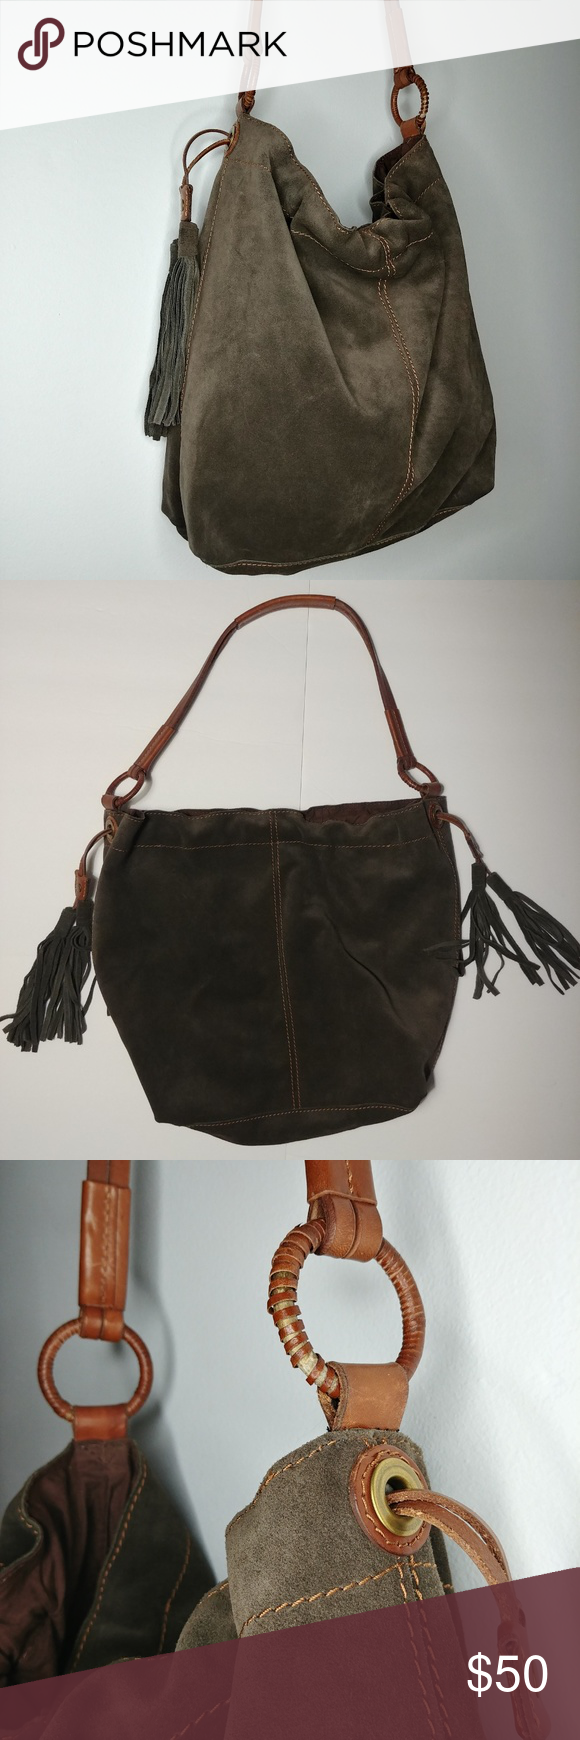 Lucky Brand Large Olive Suede Hobo Bag w  Fringe Fabulous vintage-inspired hobo  bag by Lucky Brand! -Brown-tinted olive green (lovely neutral shade) ... b8d5004272